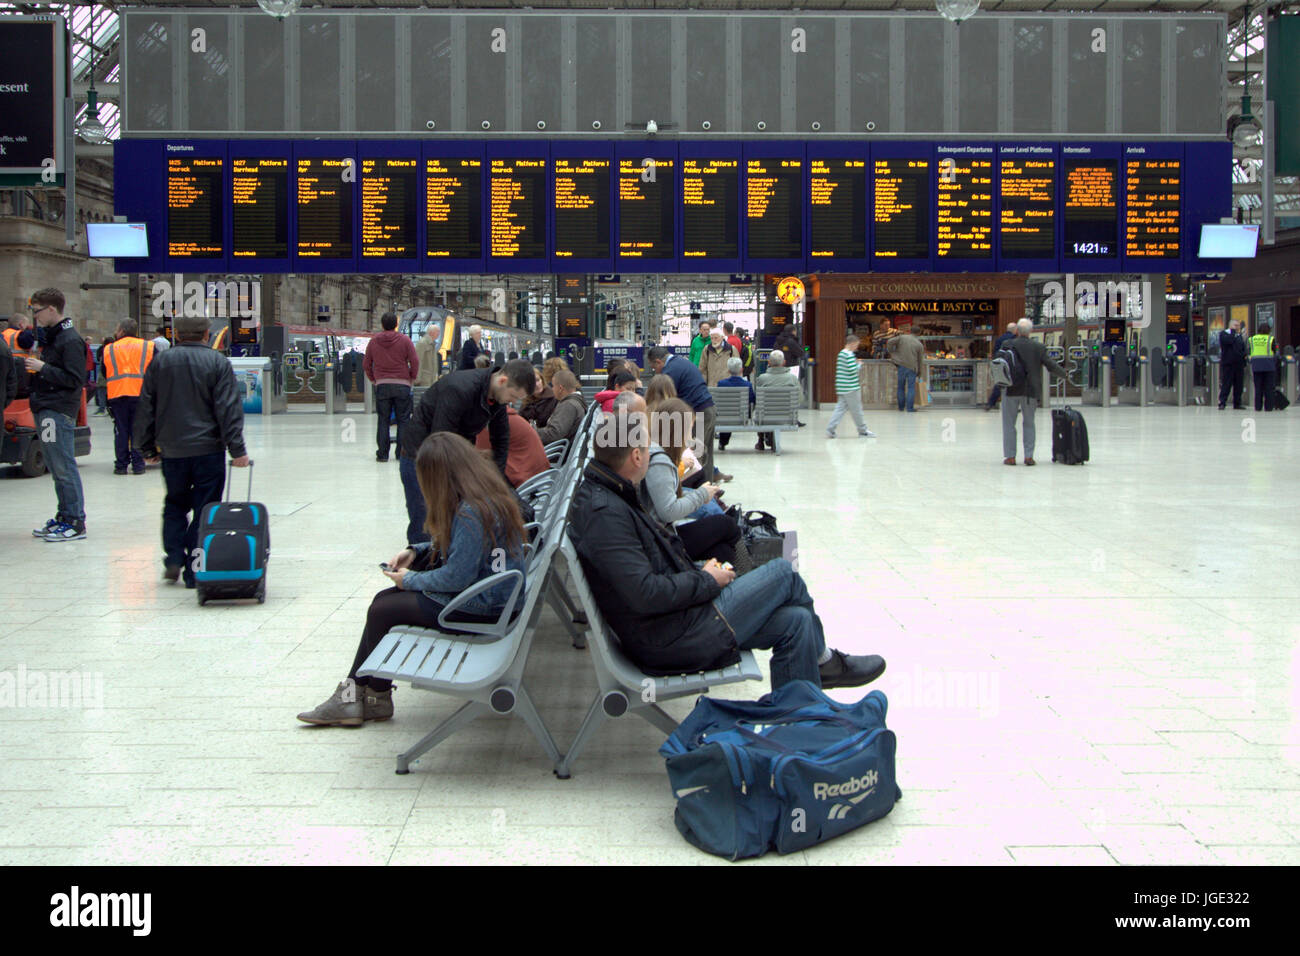 Central  railway Station Glasgow concourse with commuters and destinations board - Stock Image